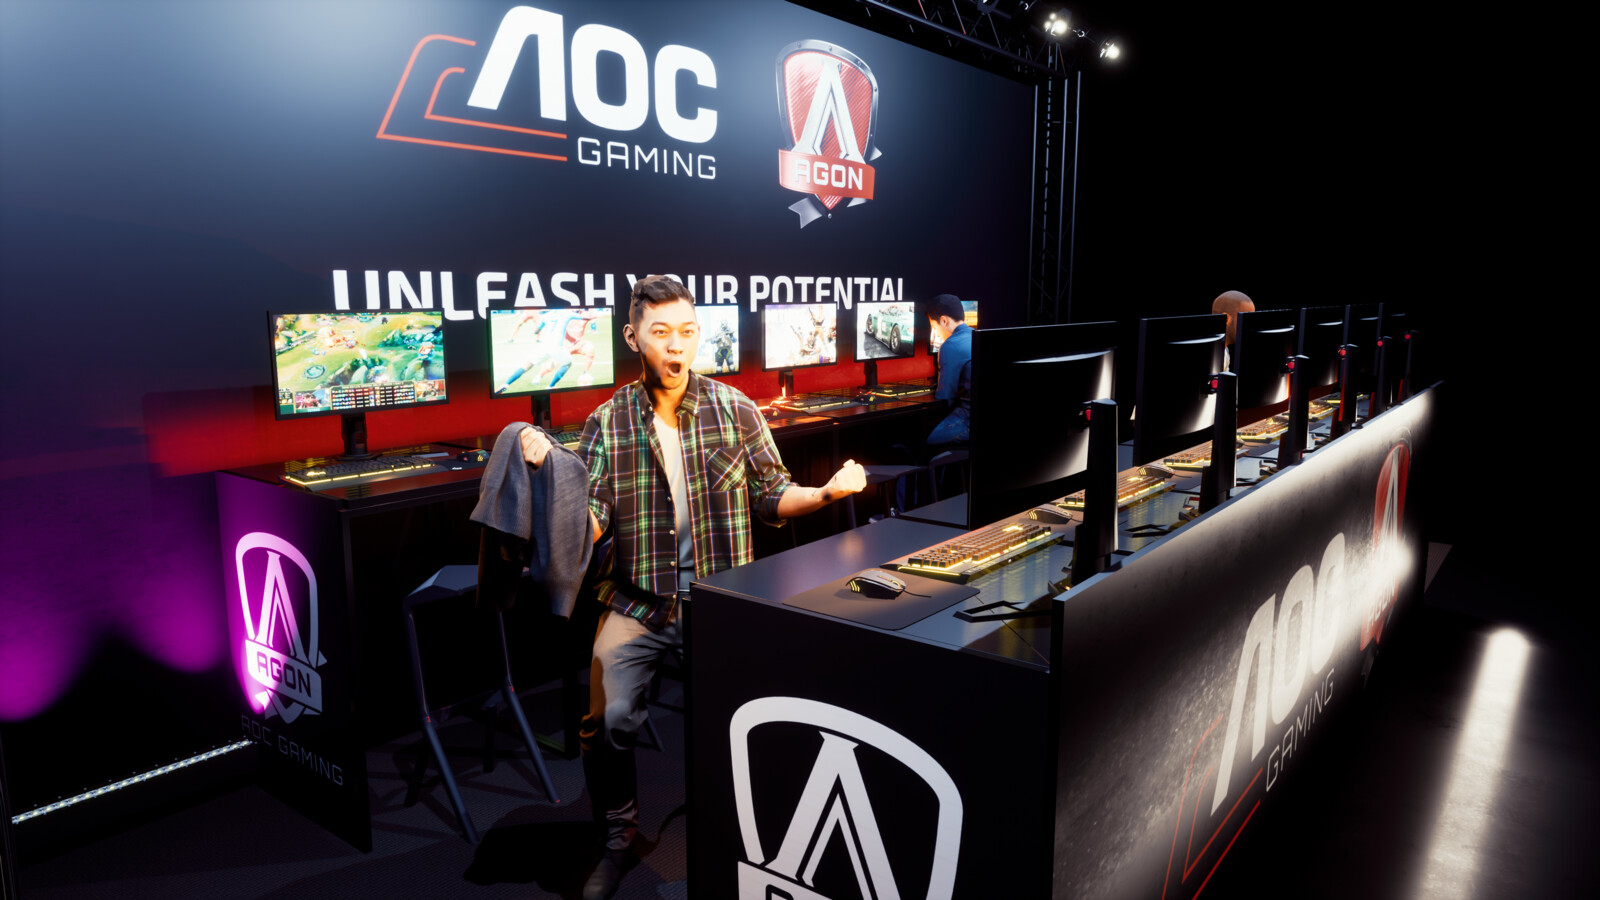 AOC Gaming Booth Concept